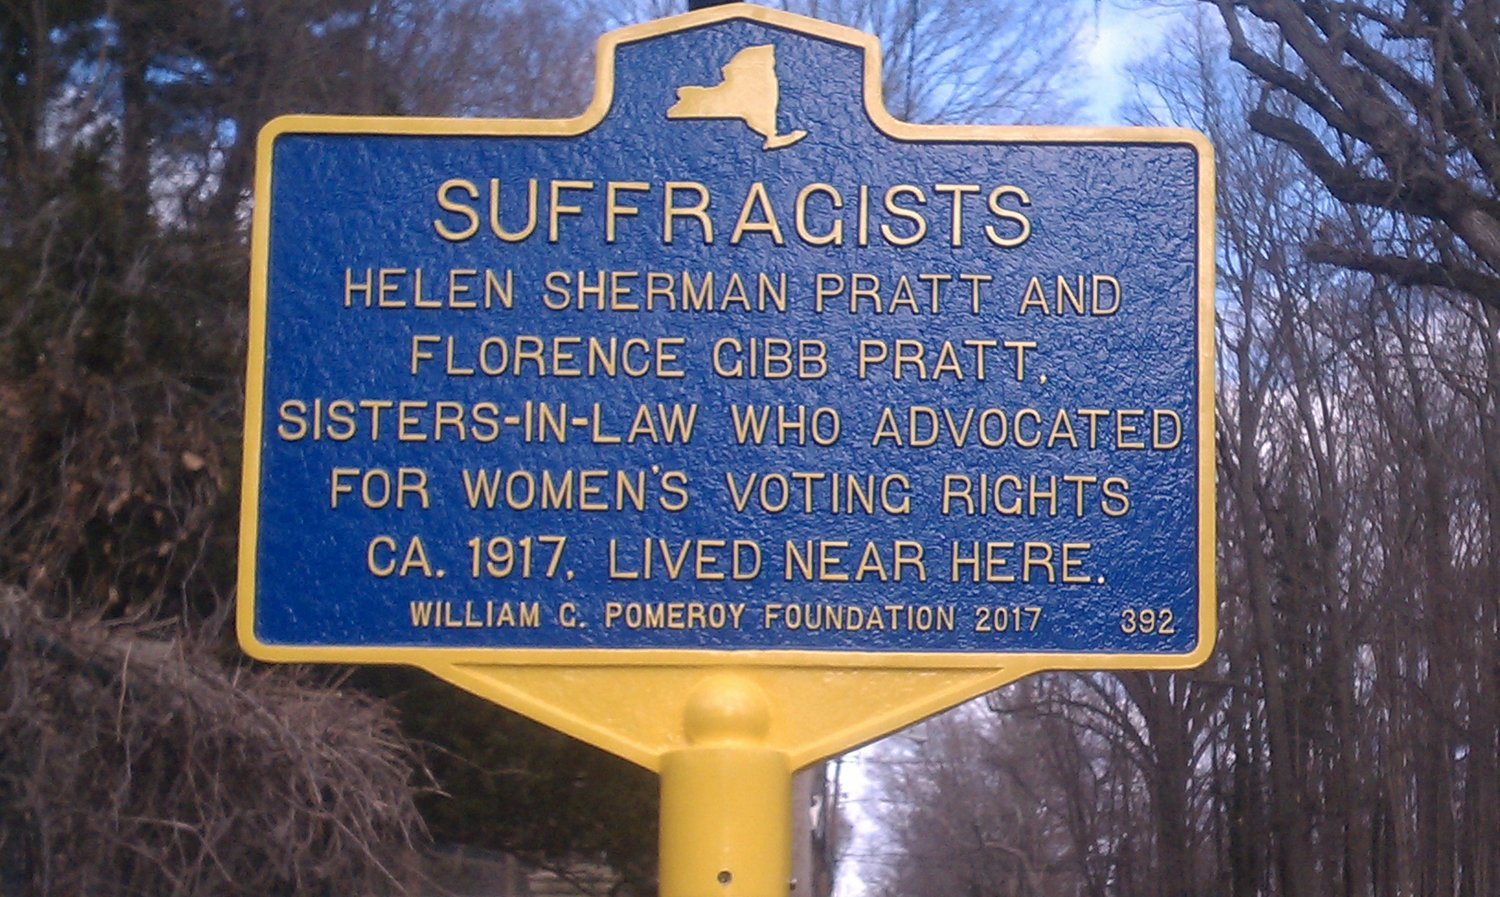 In 2017, the City of Glen Cove and the Long Island Woman Suffrage Association had dedicated a Woman Suffrage historic marker on Dosoris Lane to commemorate the 100th anniversary of women's right to vote in the state of New York and the contribution of Glen Cove Suffragists.